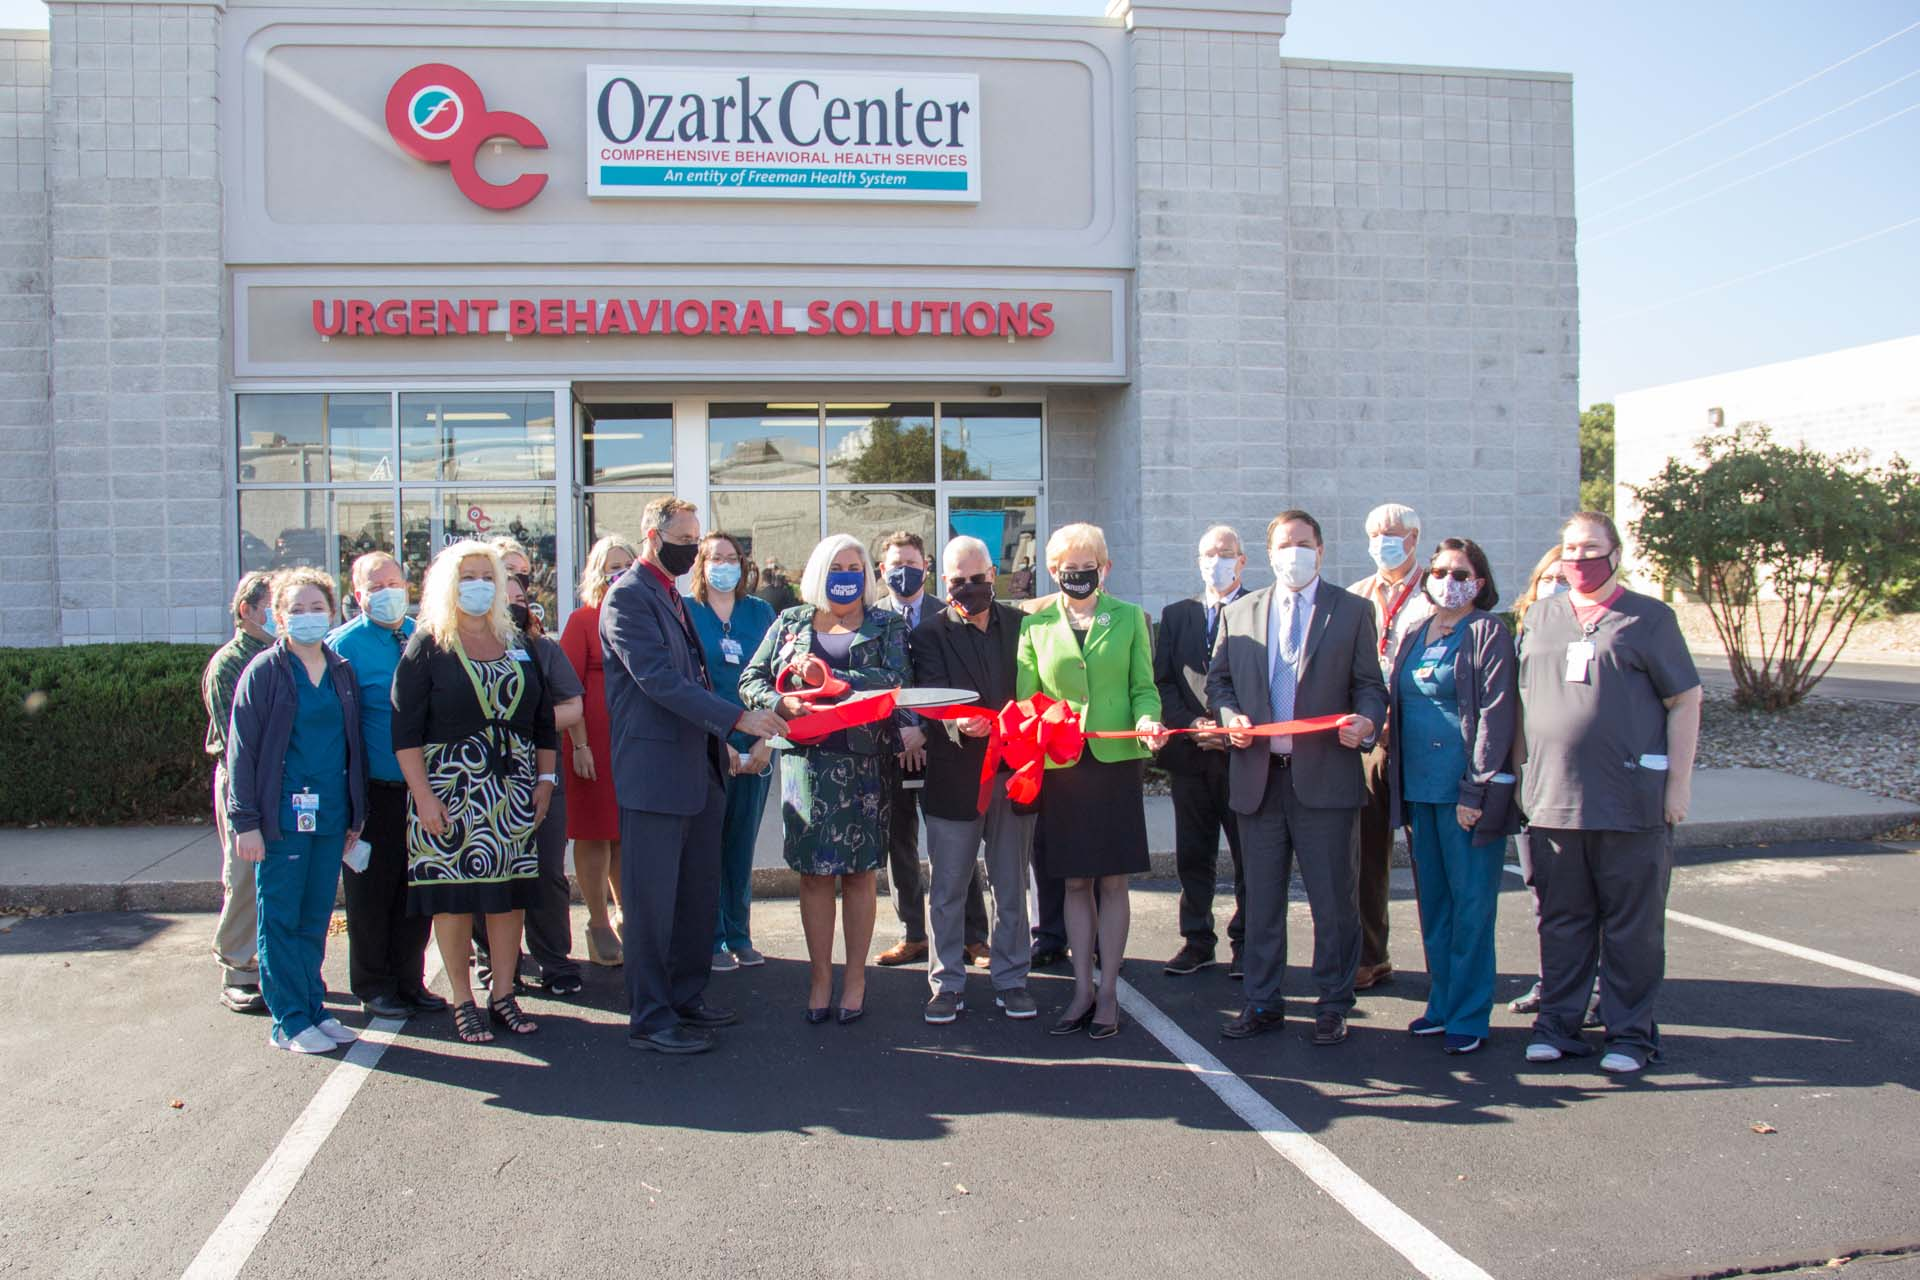 Ozark Center UBS ribbon cutting